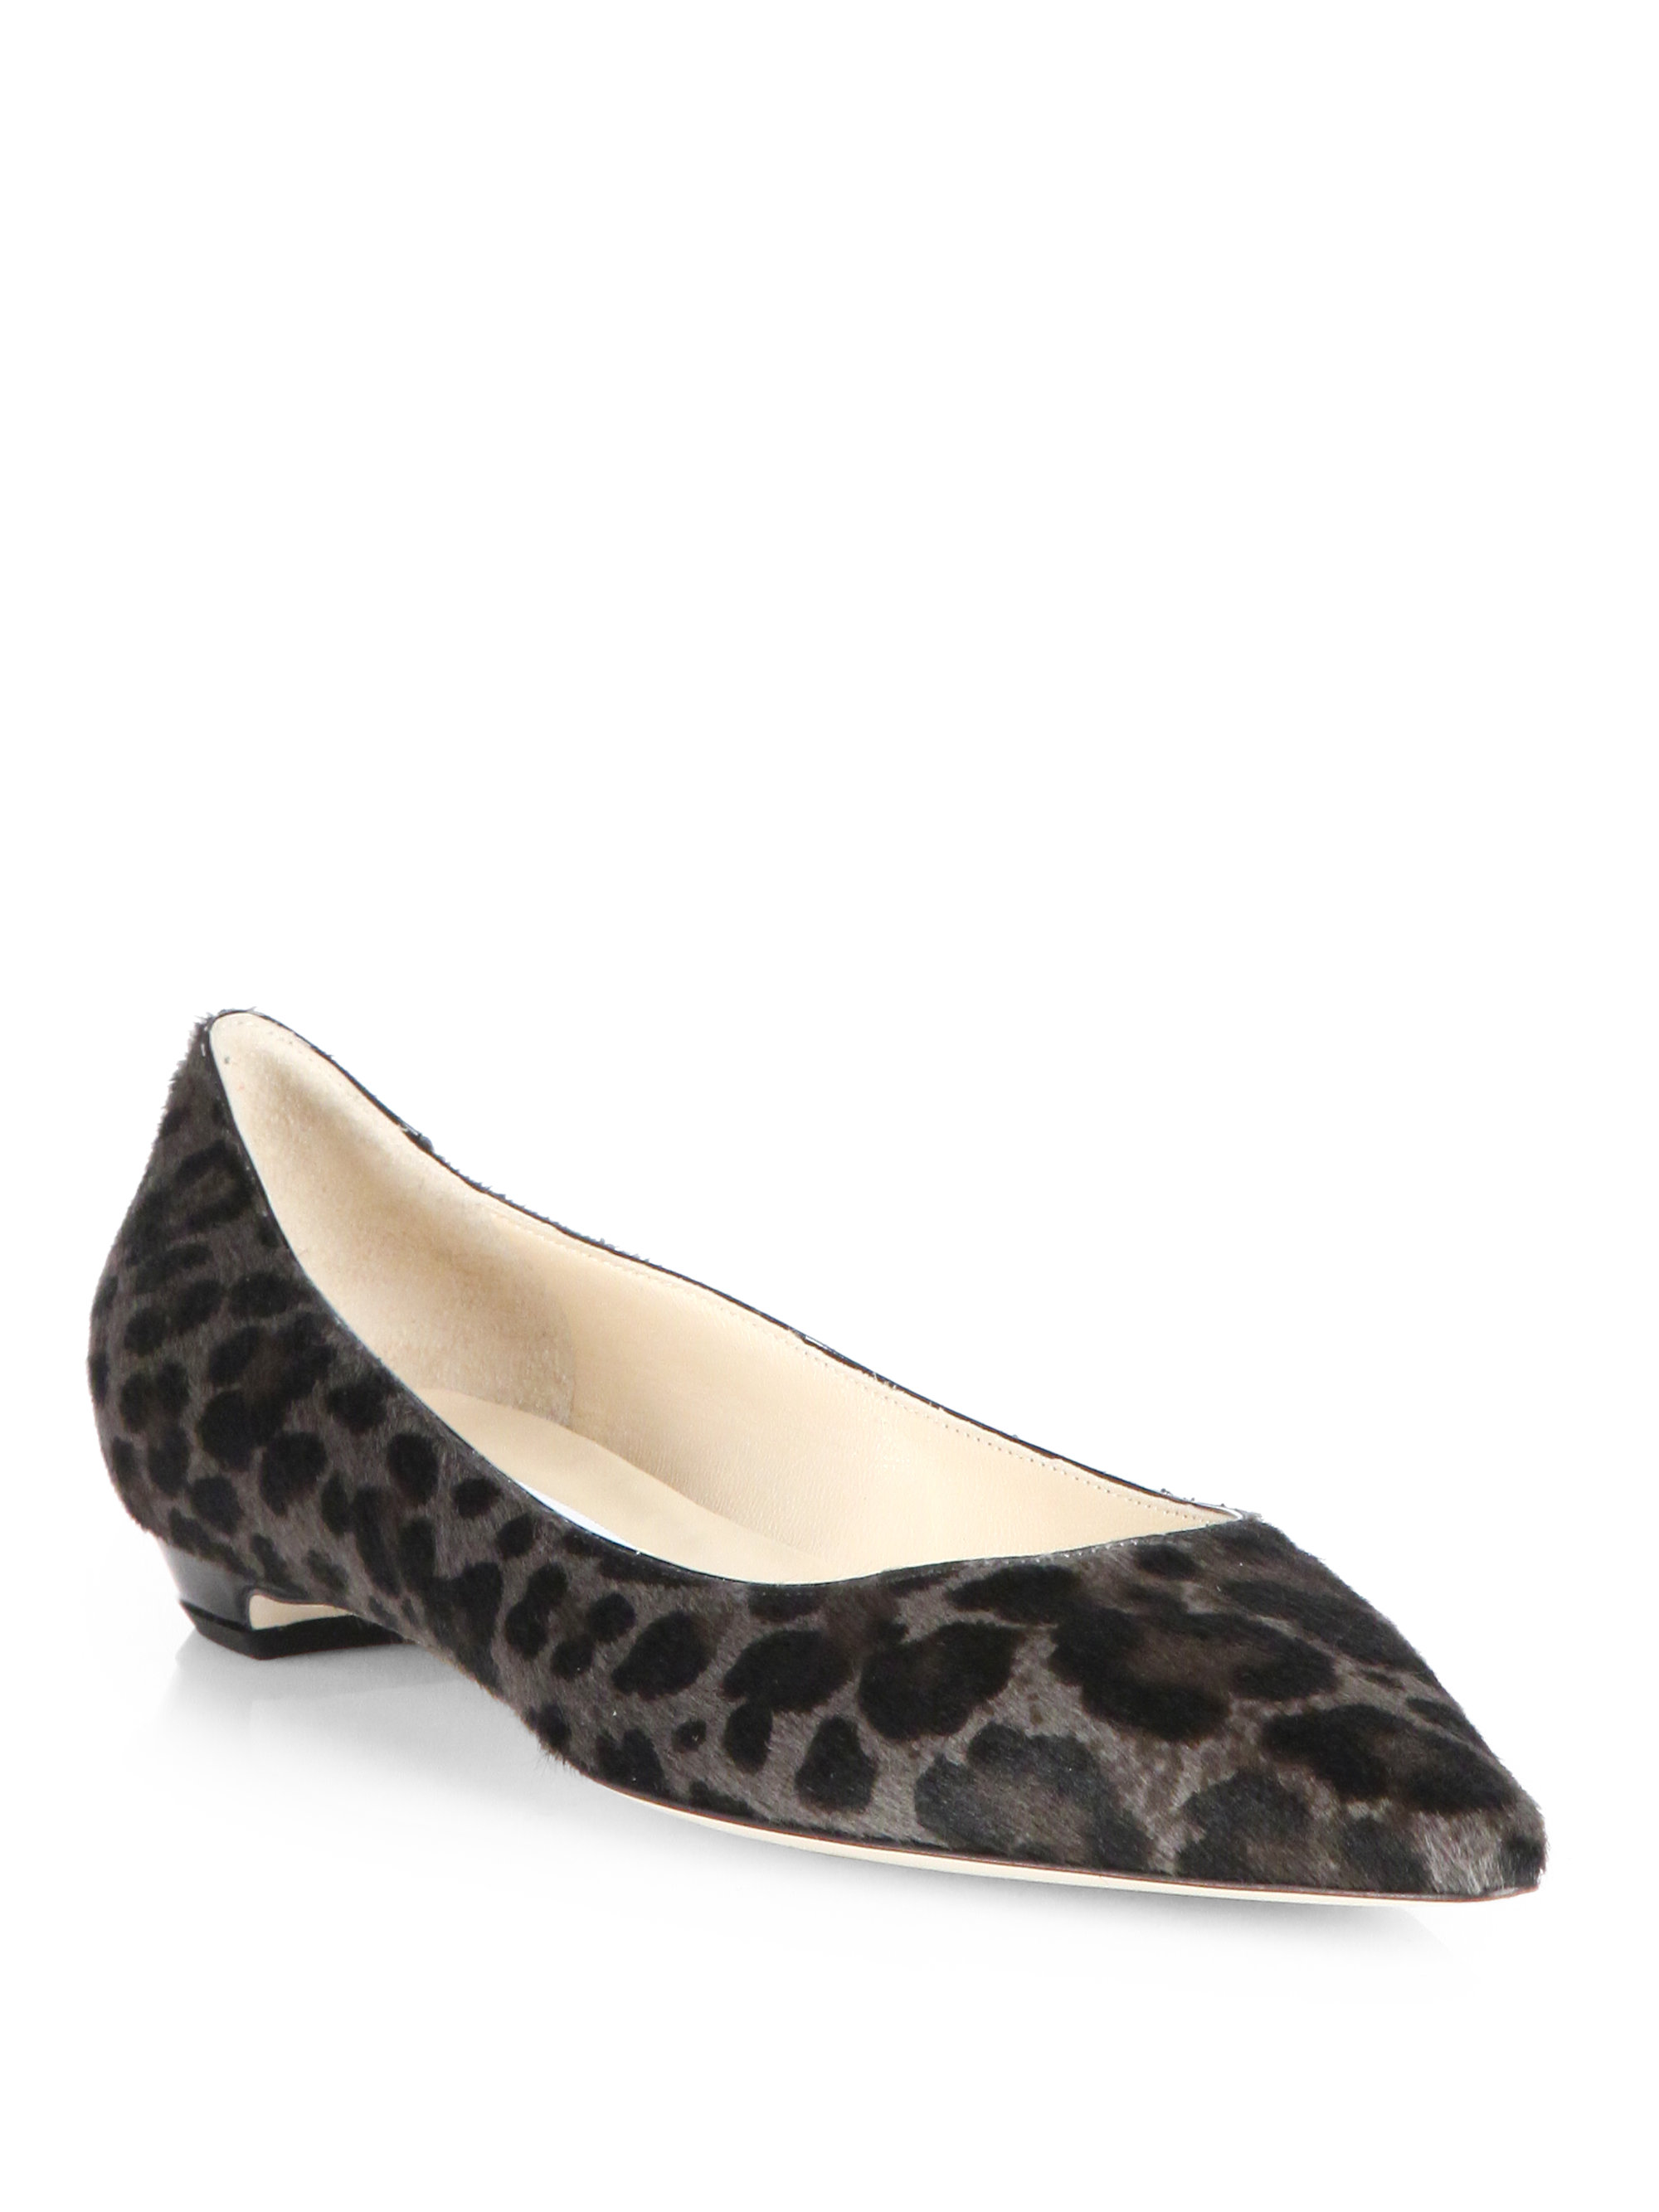 8fb2377dce0 ... buy lyst jimmy choo sandy leopard print pony hair flats in black 307c6  4bf78 ...